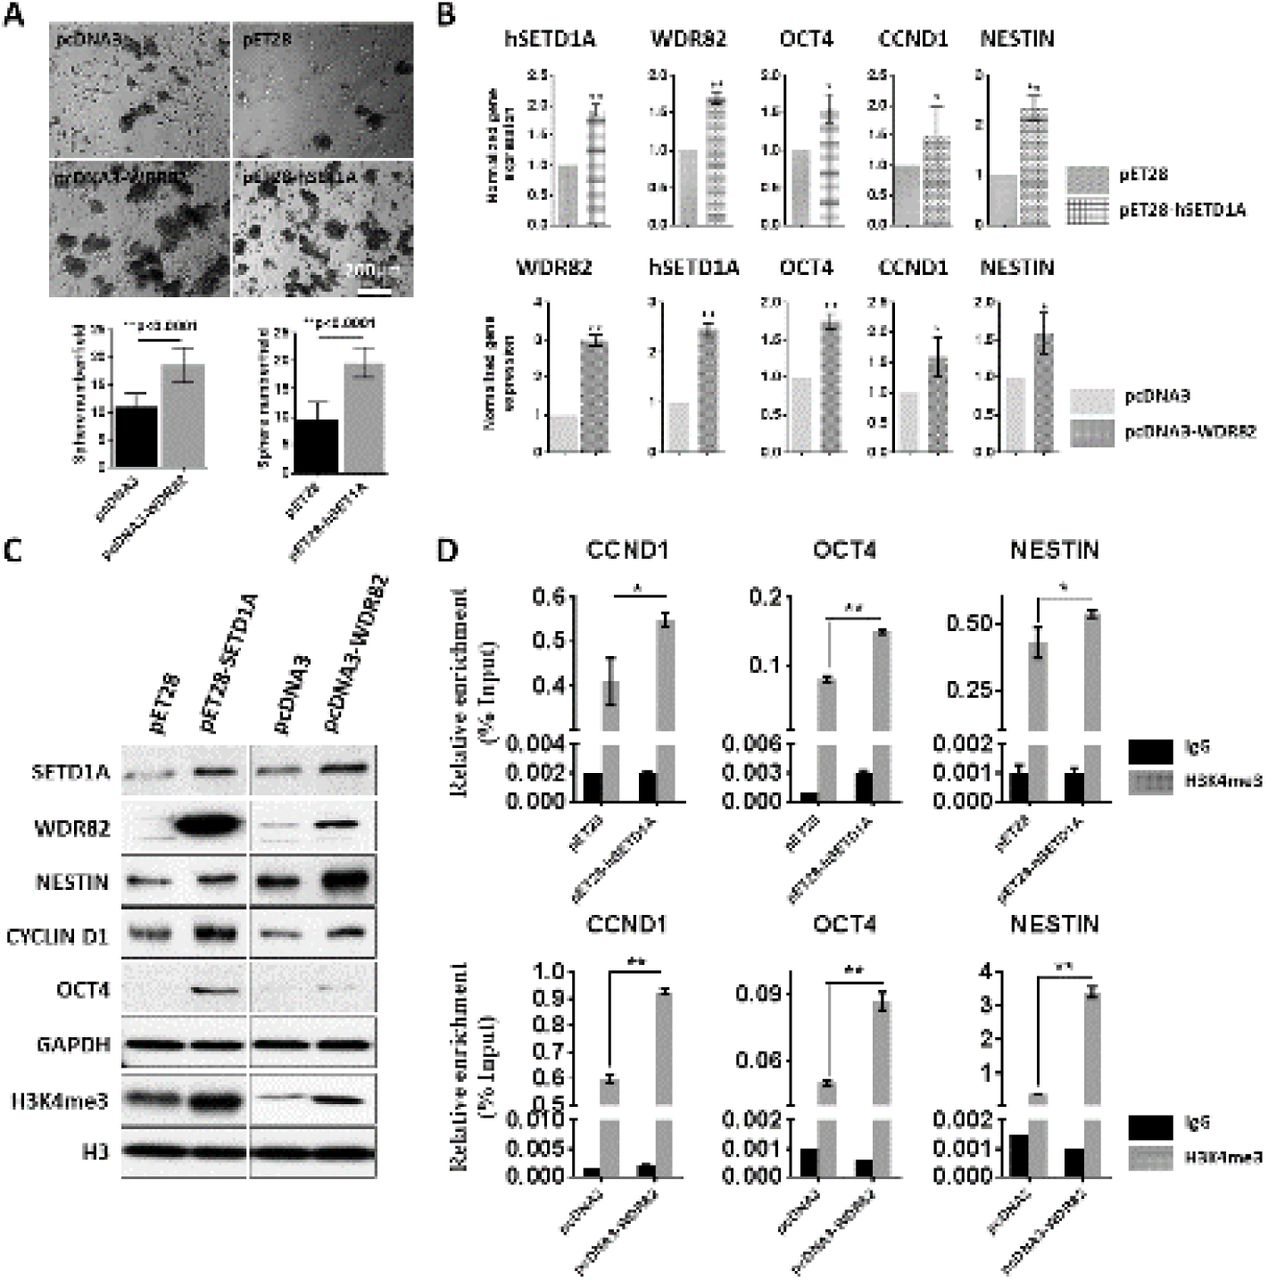 Ectopic expression of human SETD1A and WDR82 increases global H3K4me3 promoter occupancy in normal human astrocytes (HAs). A. Representative images and quantitative graphs show sphere formation from HAs following transfection with WDR82 (pcDNA3-WDR82) or human SETD1A (pET28-hSETD1A-MHL) expression plasmids, in comparison to controls (pcDNA3 and pET28- MHL). B and C. Real-time PCR (B) and western blots (C) show expression of hSETD1A, WDR82, OCT4, CCND1 and NESTIN. D. ChIP with rabbit IgG and H3K4me3 combined with real-time PCR using promoter primers for OCT4, CCND1 and NESTIN following HA transfection. Error bars show the standard deviation of three independent experiments. (* p